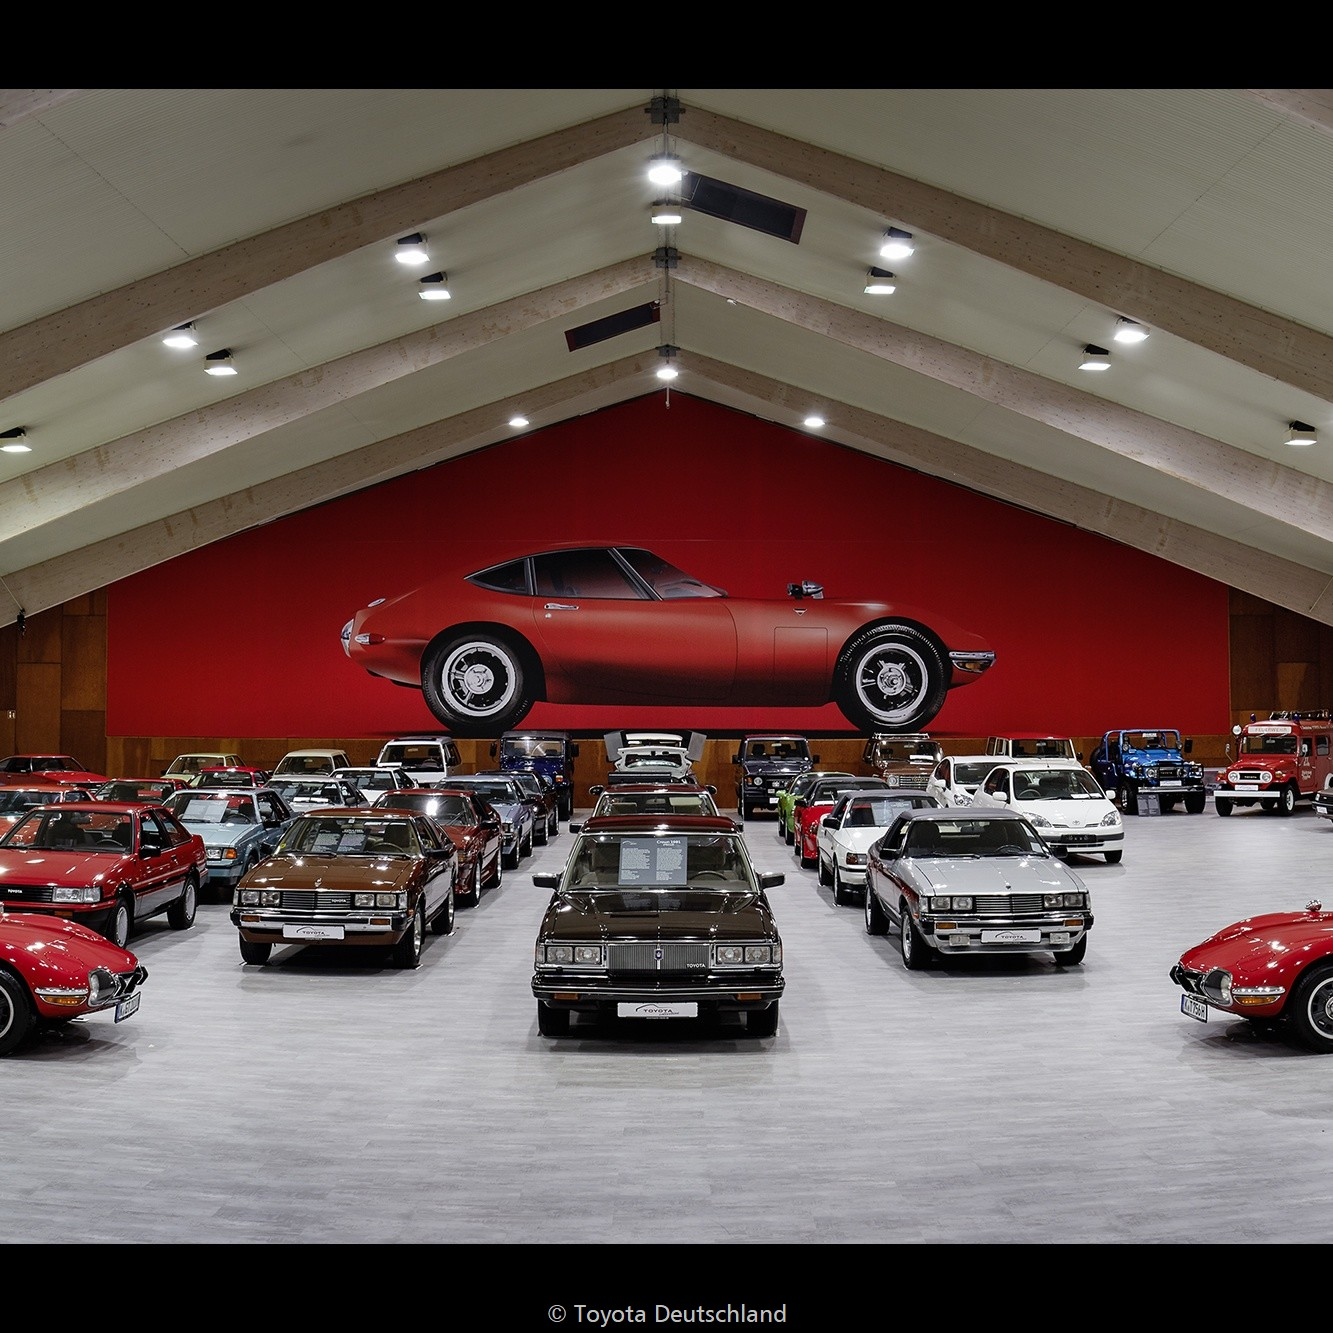 2017-11-23 toyota collection 20